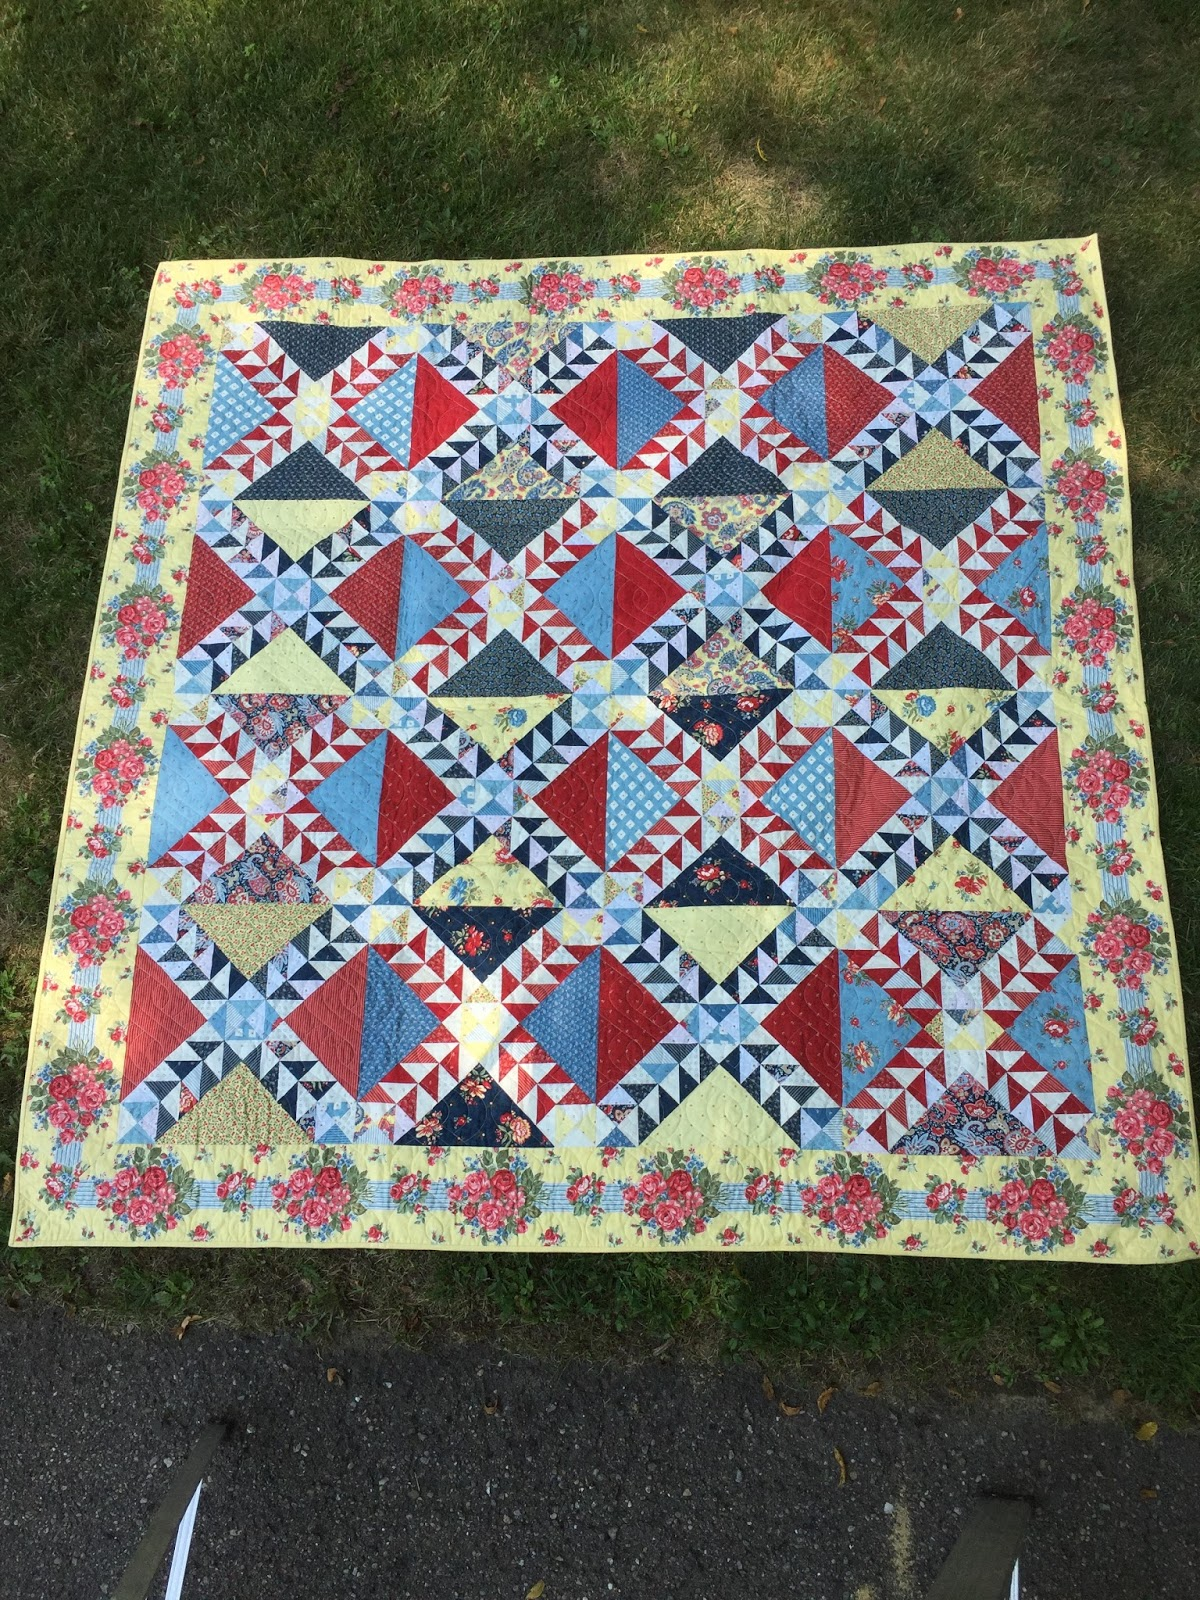 We Also Have Ann S Arbor Fabric Here Are Delighted To The Lady Of Lake Superior Quilt Kit In Our Etsy